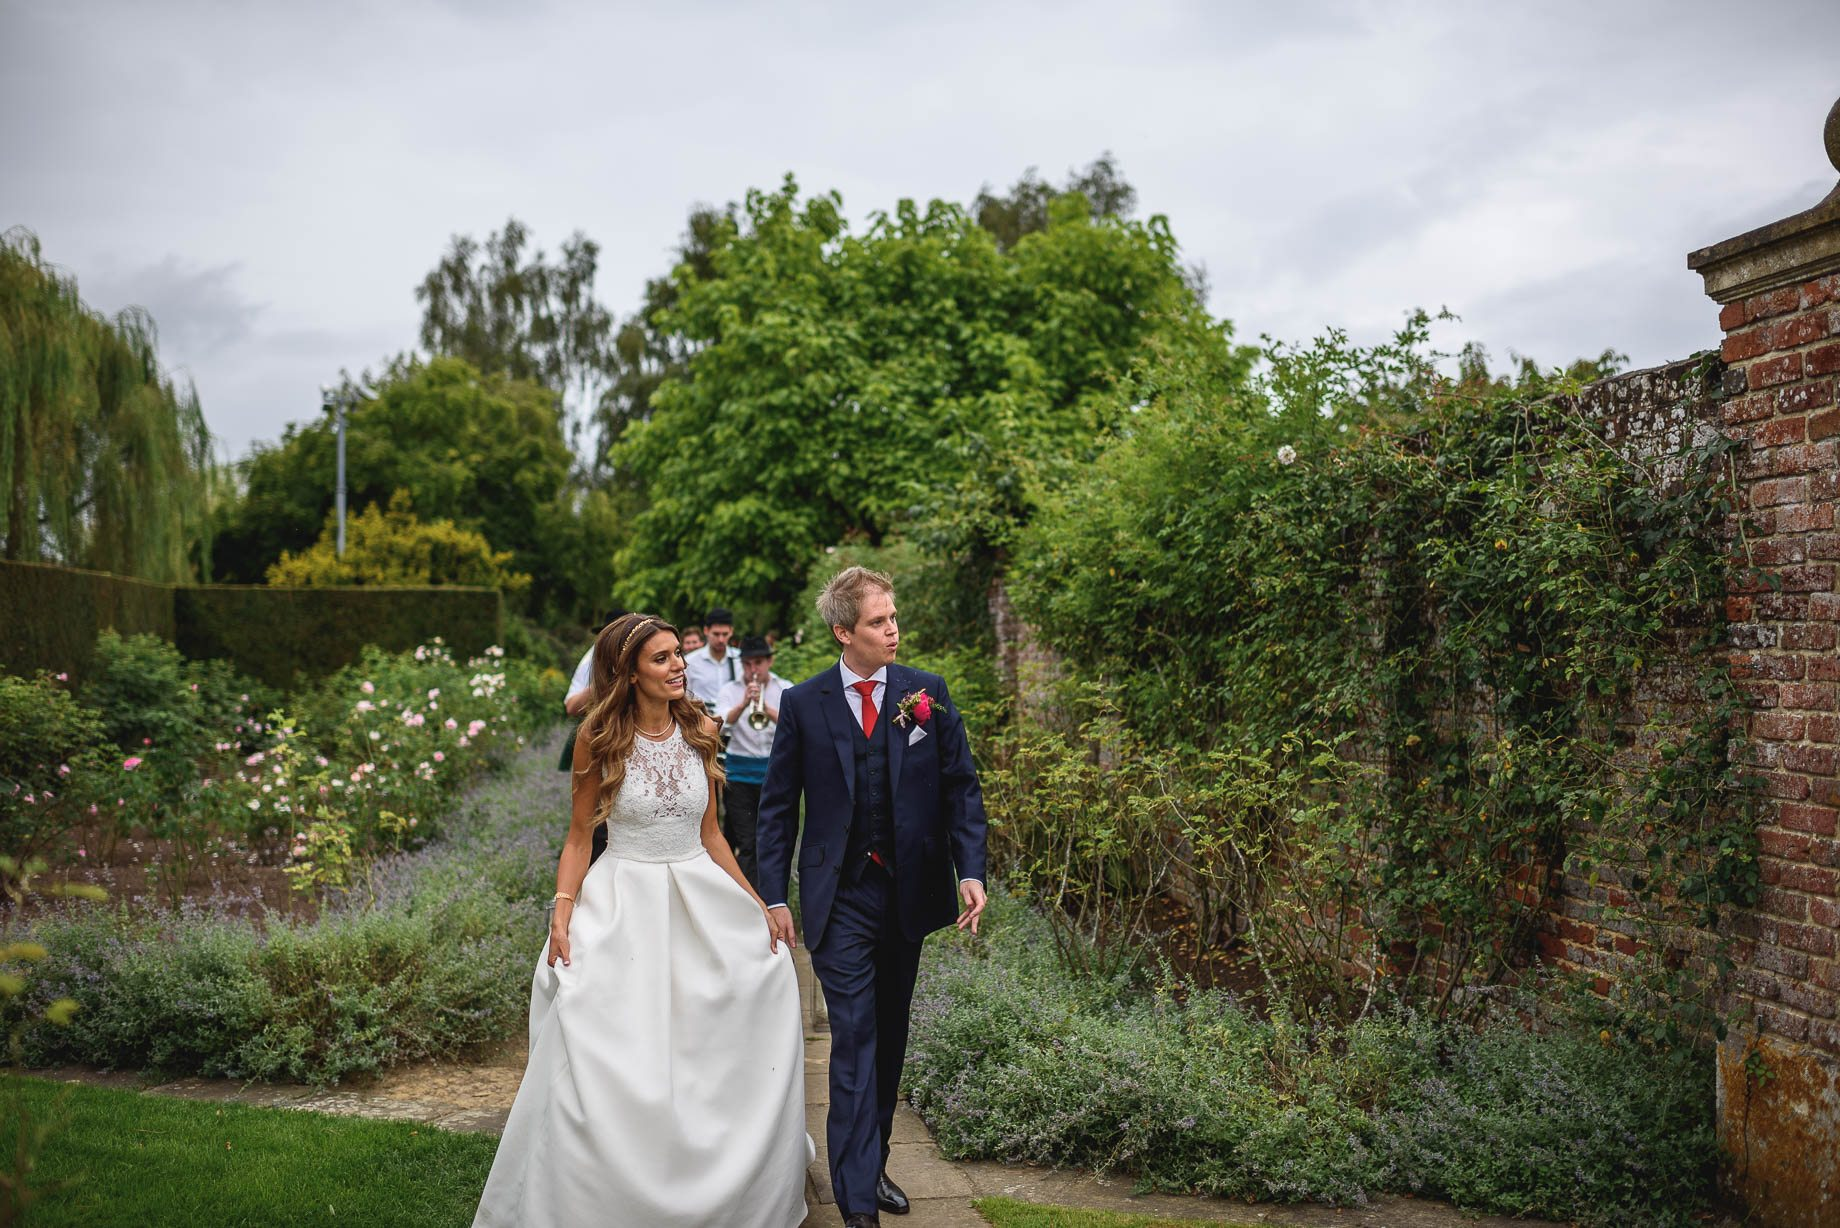 surrey-wedding-photography-guy-collier-photography-claire-and-tom-115-of-227